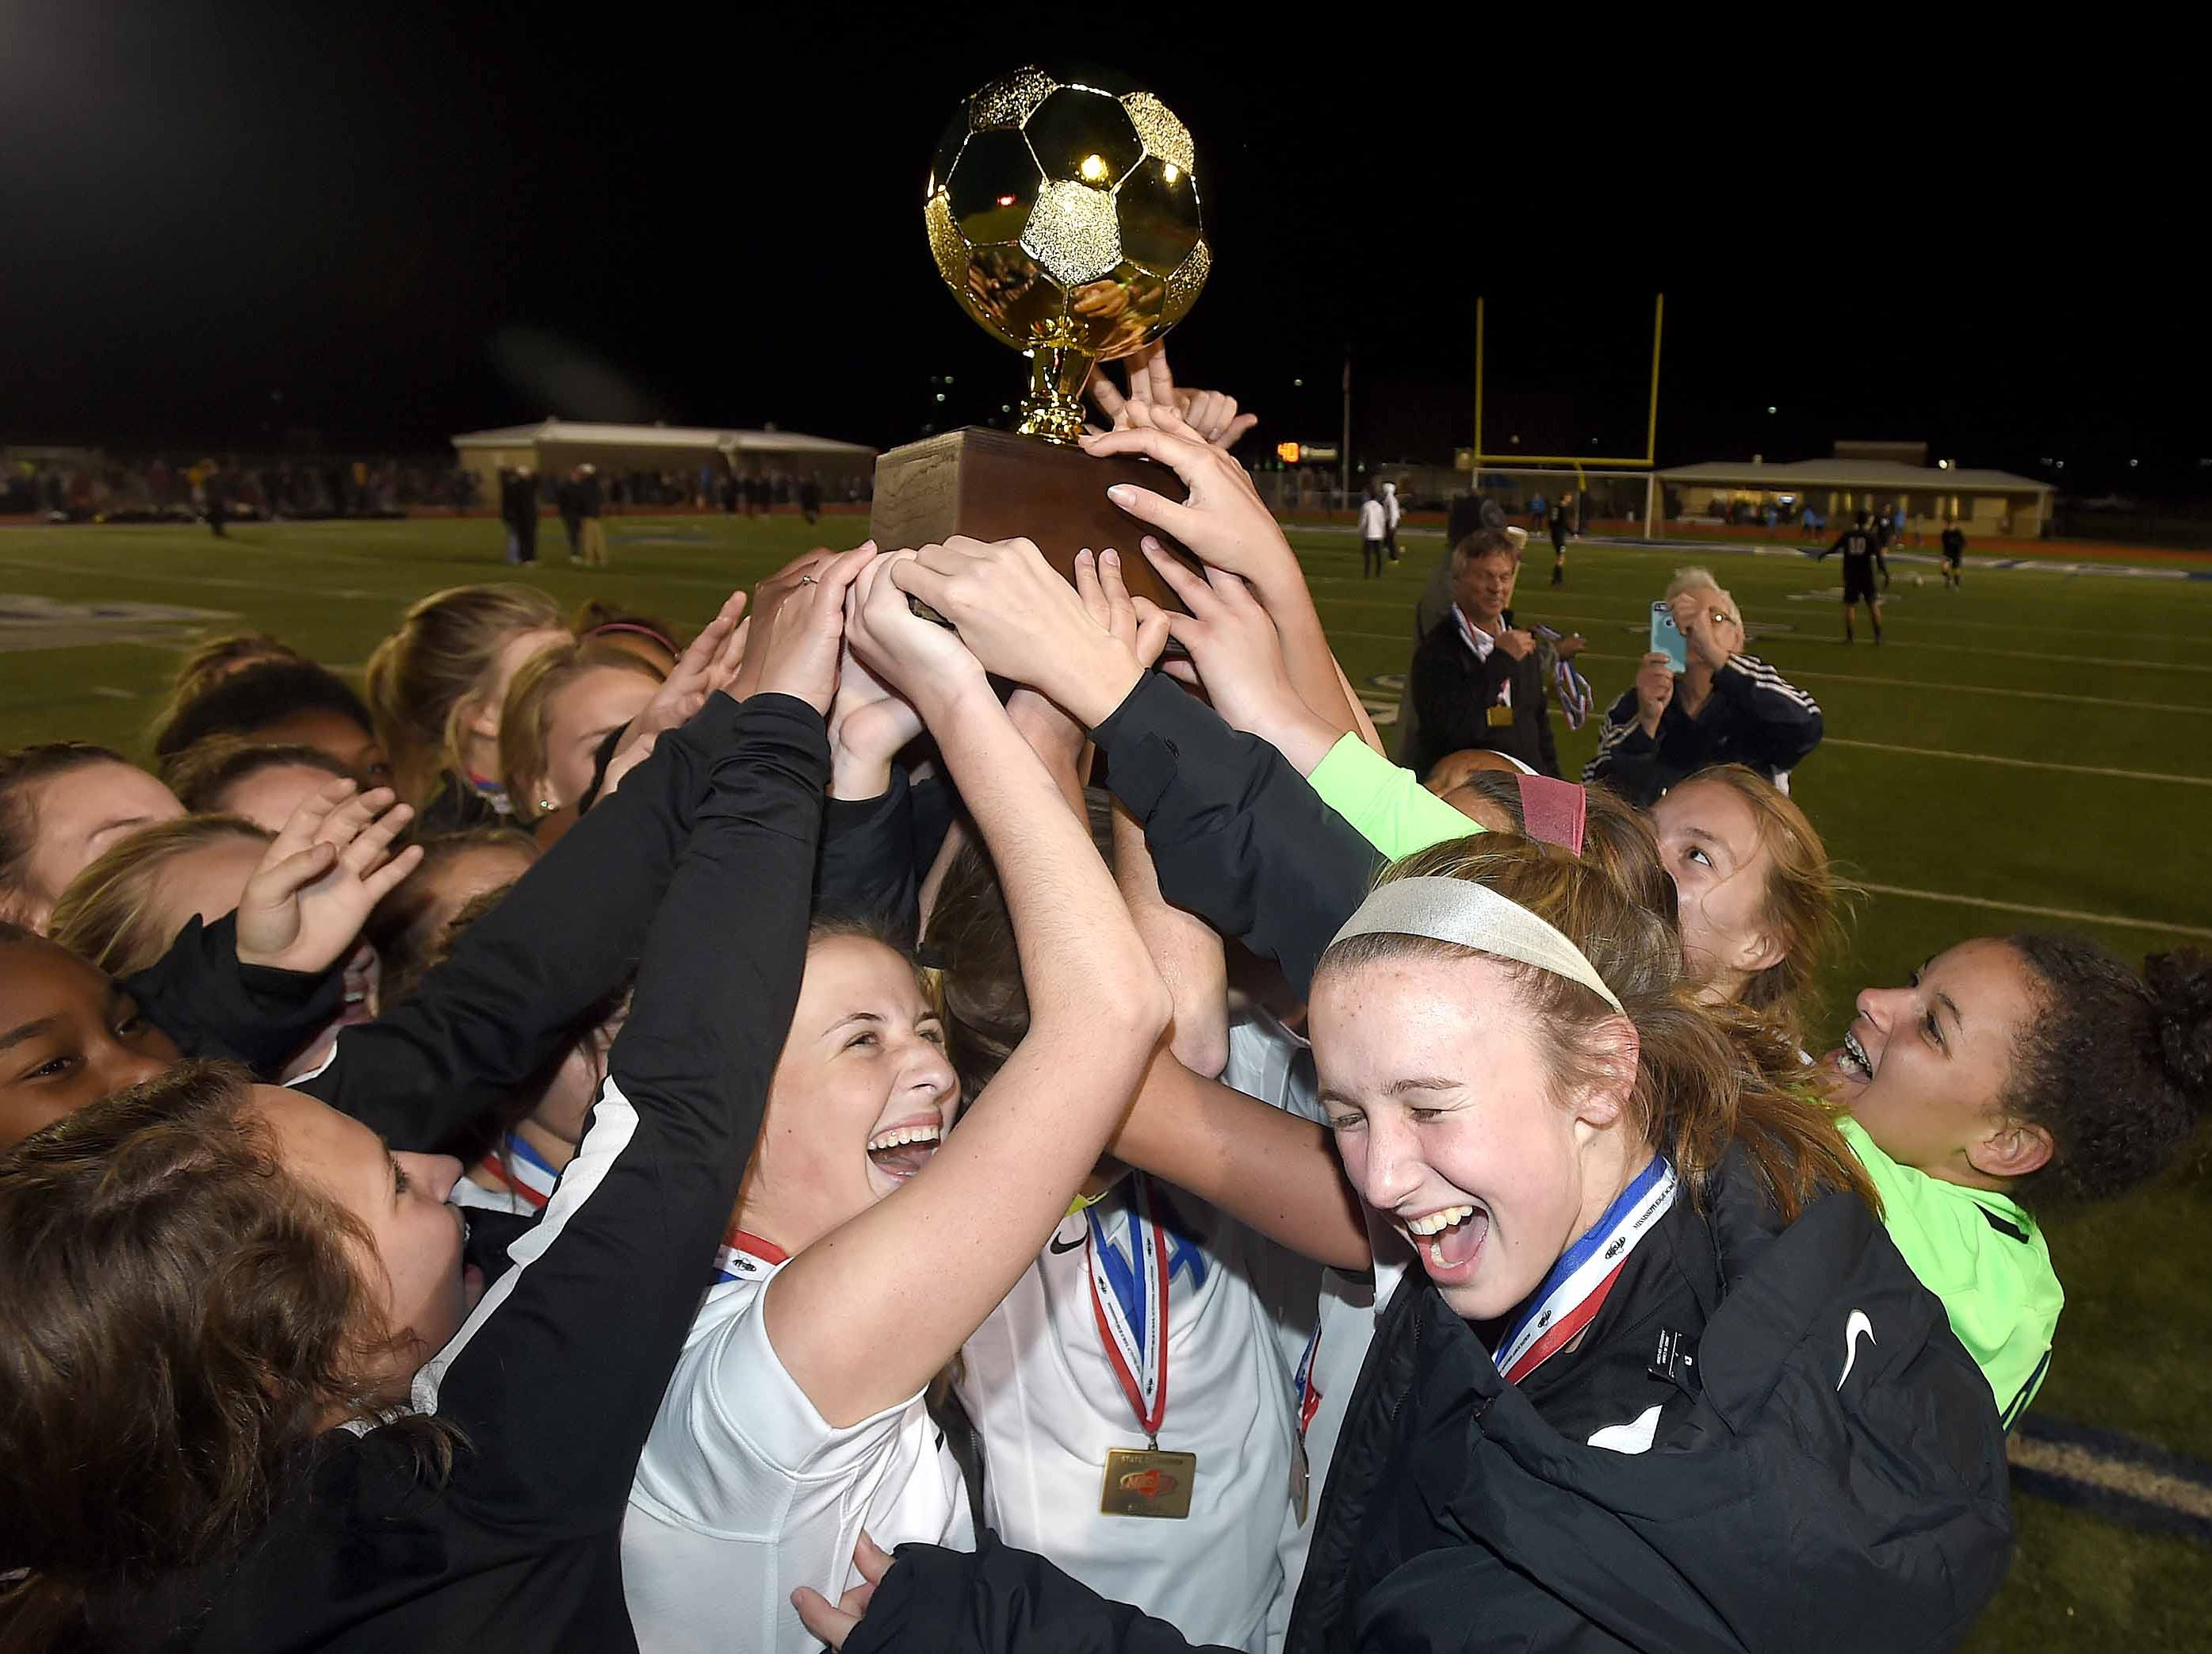 The Ocean Springs Lady Greyhounds celebrate with the Class 6A state championship trophy after beating Madison Central 1-0 on penalty kicks after overtime periods in the MHSAA BlueCross Blue Shield of Mississippi Soccer Classic on Saturday, February 9, 2019, at Ridgeland High School in Ridgeland, Miss.